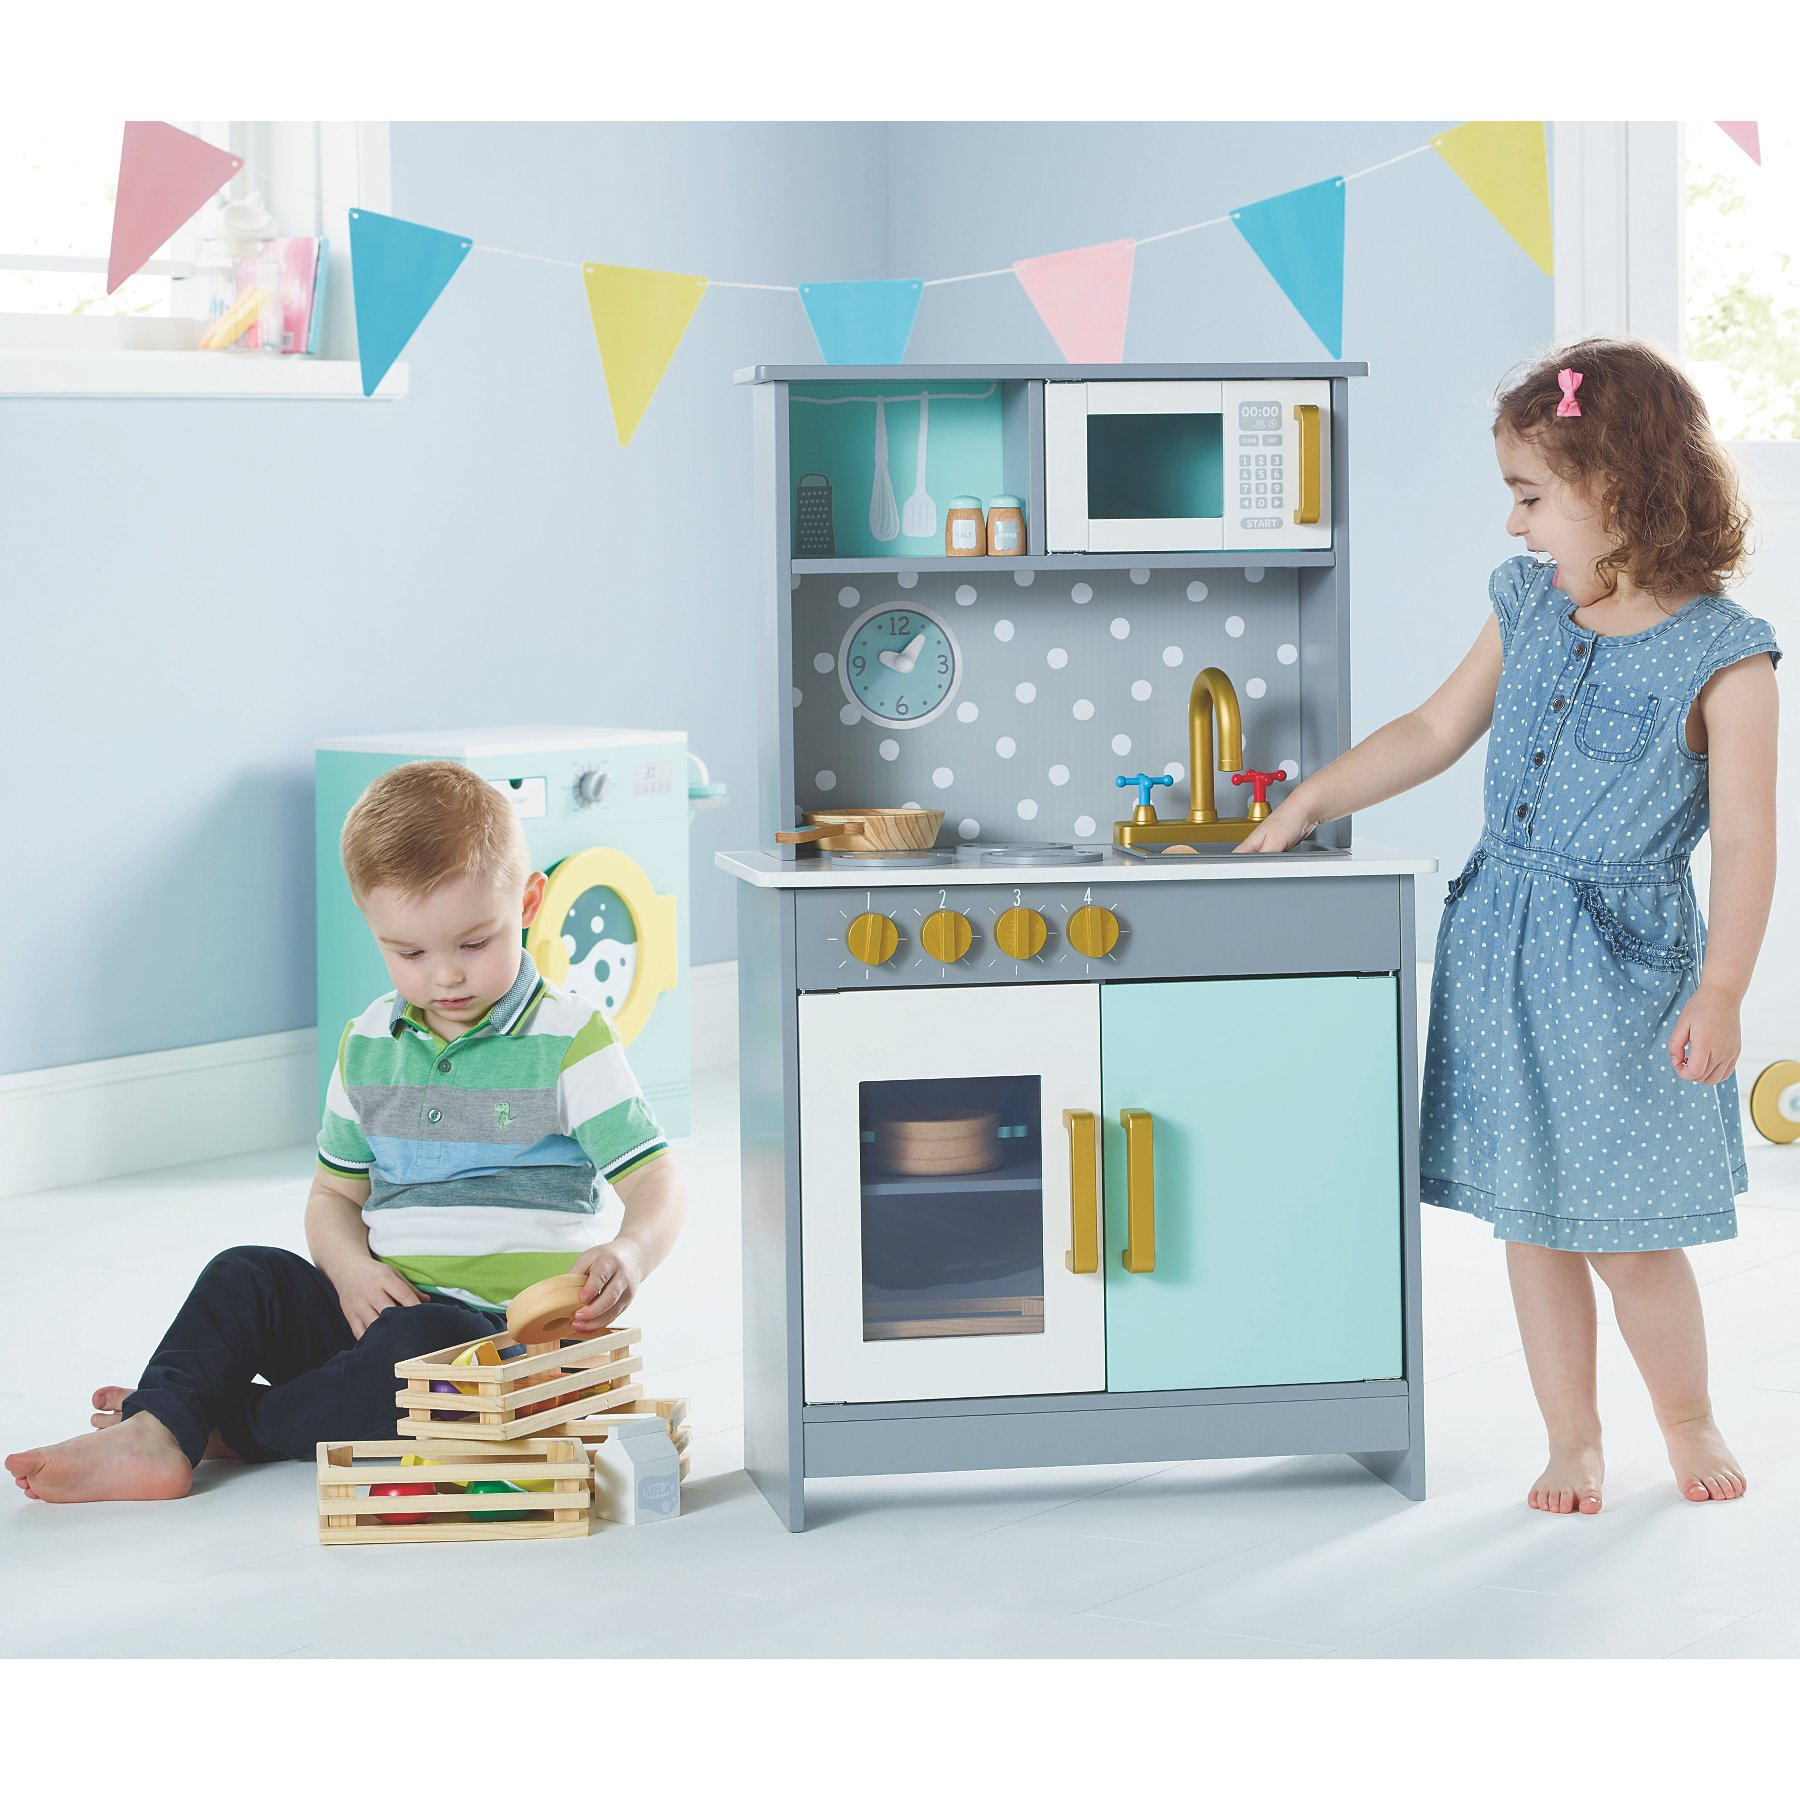 Wooden Deluxe Kitchen Toys Character George